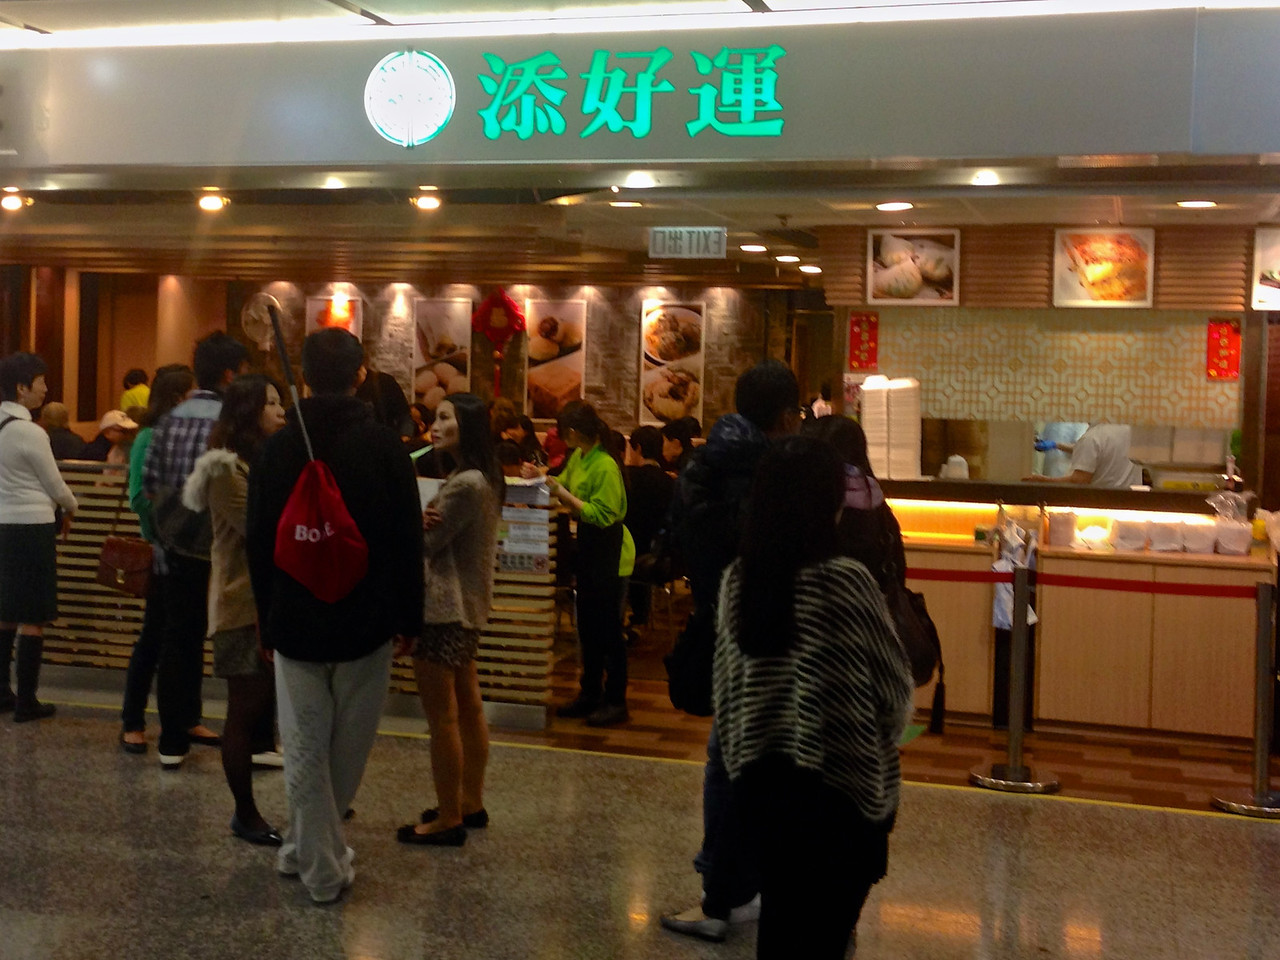 Tim Ho Wan is located on the lower floor of the mall, inside of the train station.